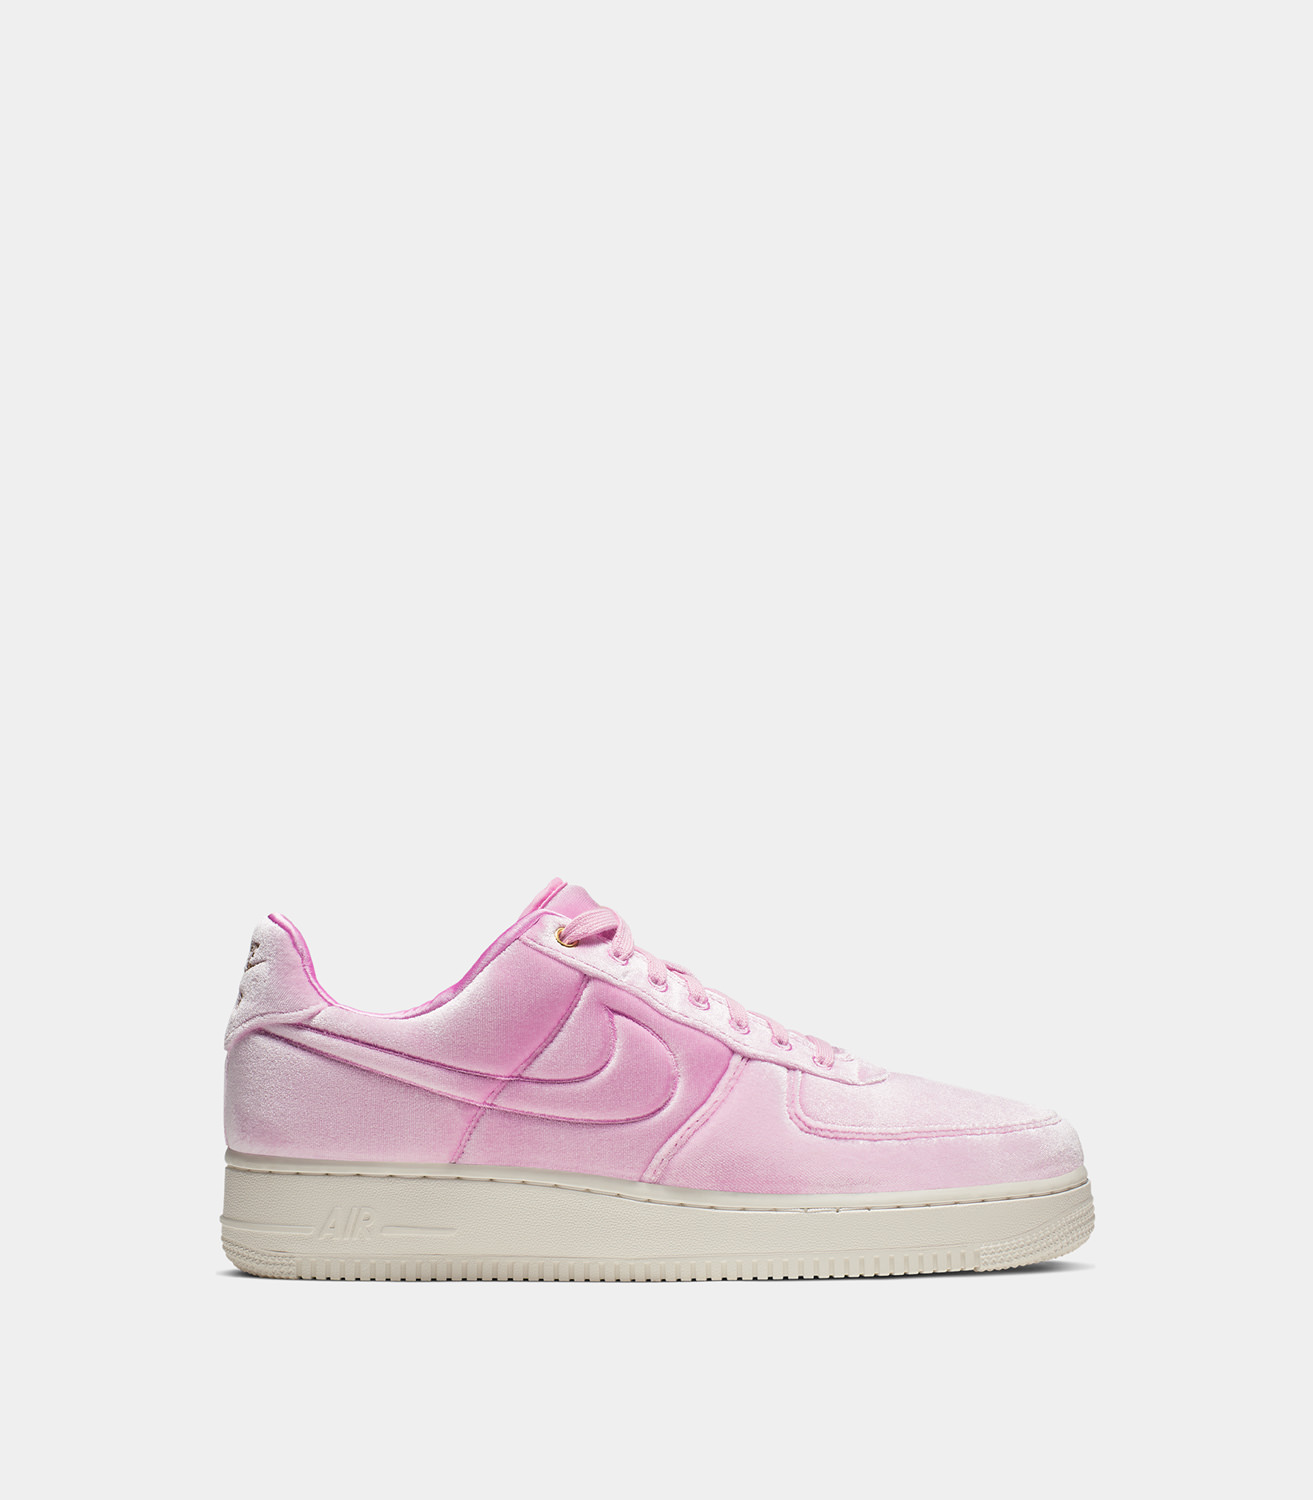 quality design 58740 c0fe4 NIKE  AIR FORCE 1 07 PRM SNEAKERS COLOR PINK